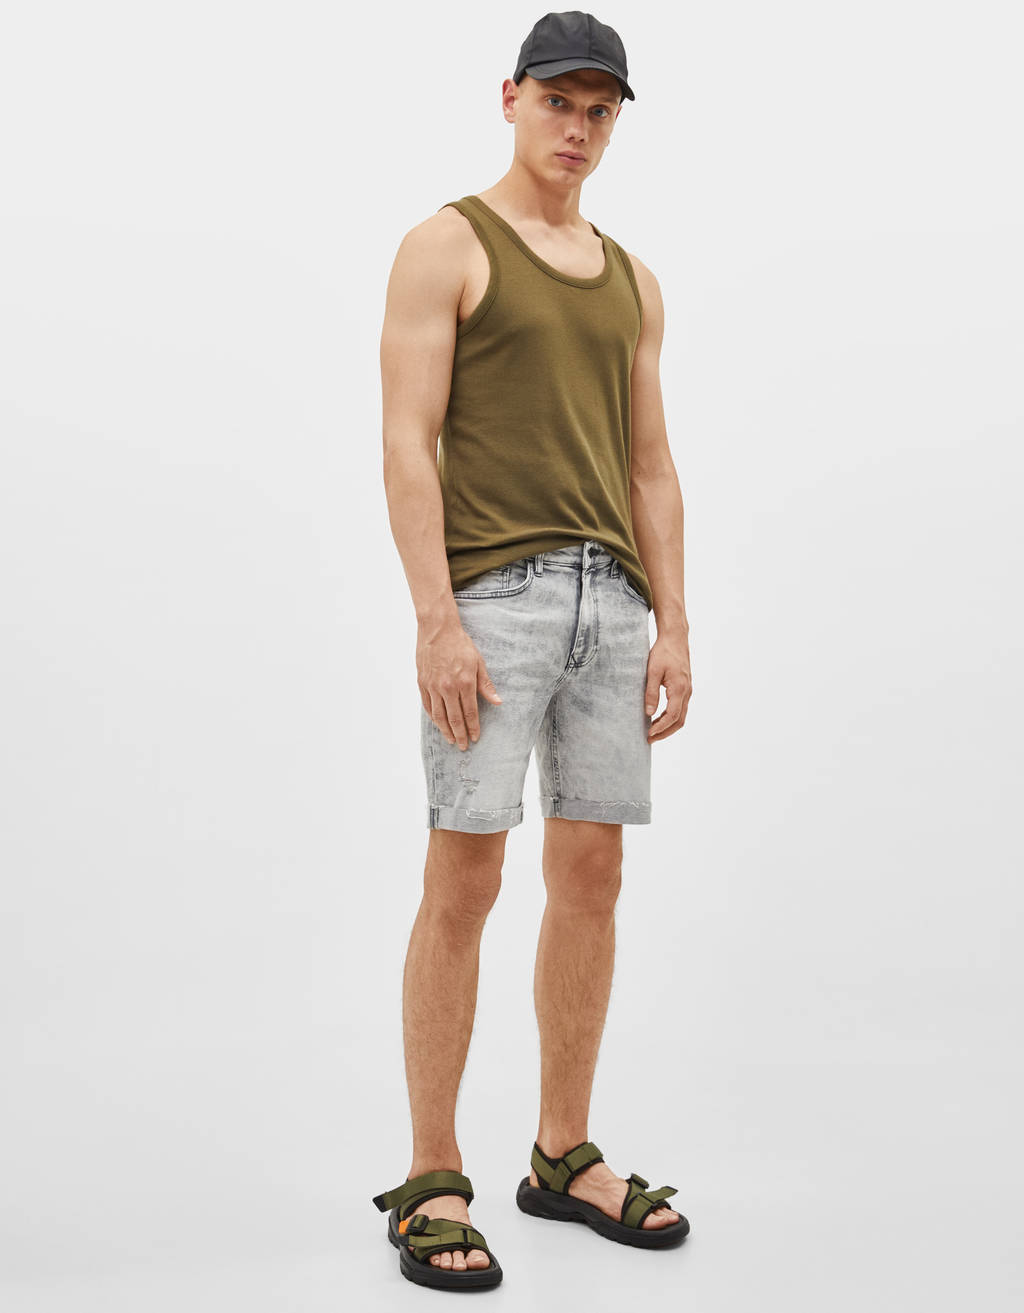 Muscle Shirt Men S T Shirts Spring Summer 2019 Bershka